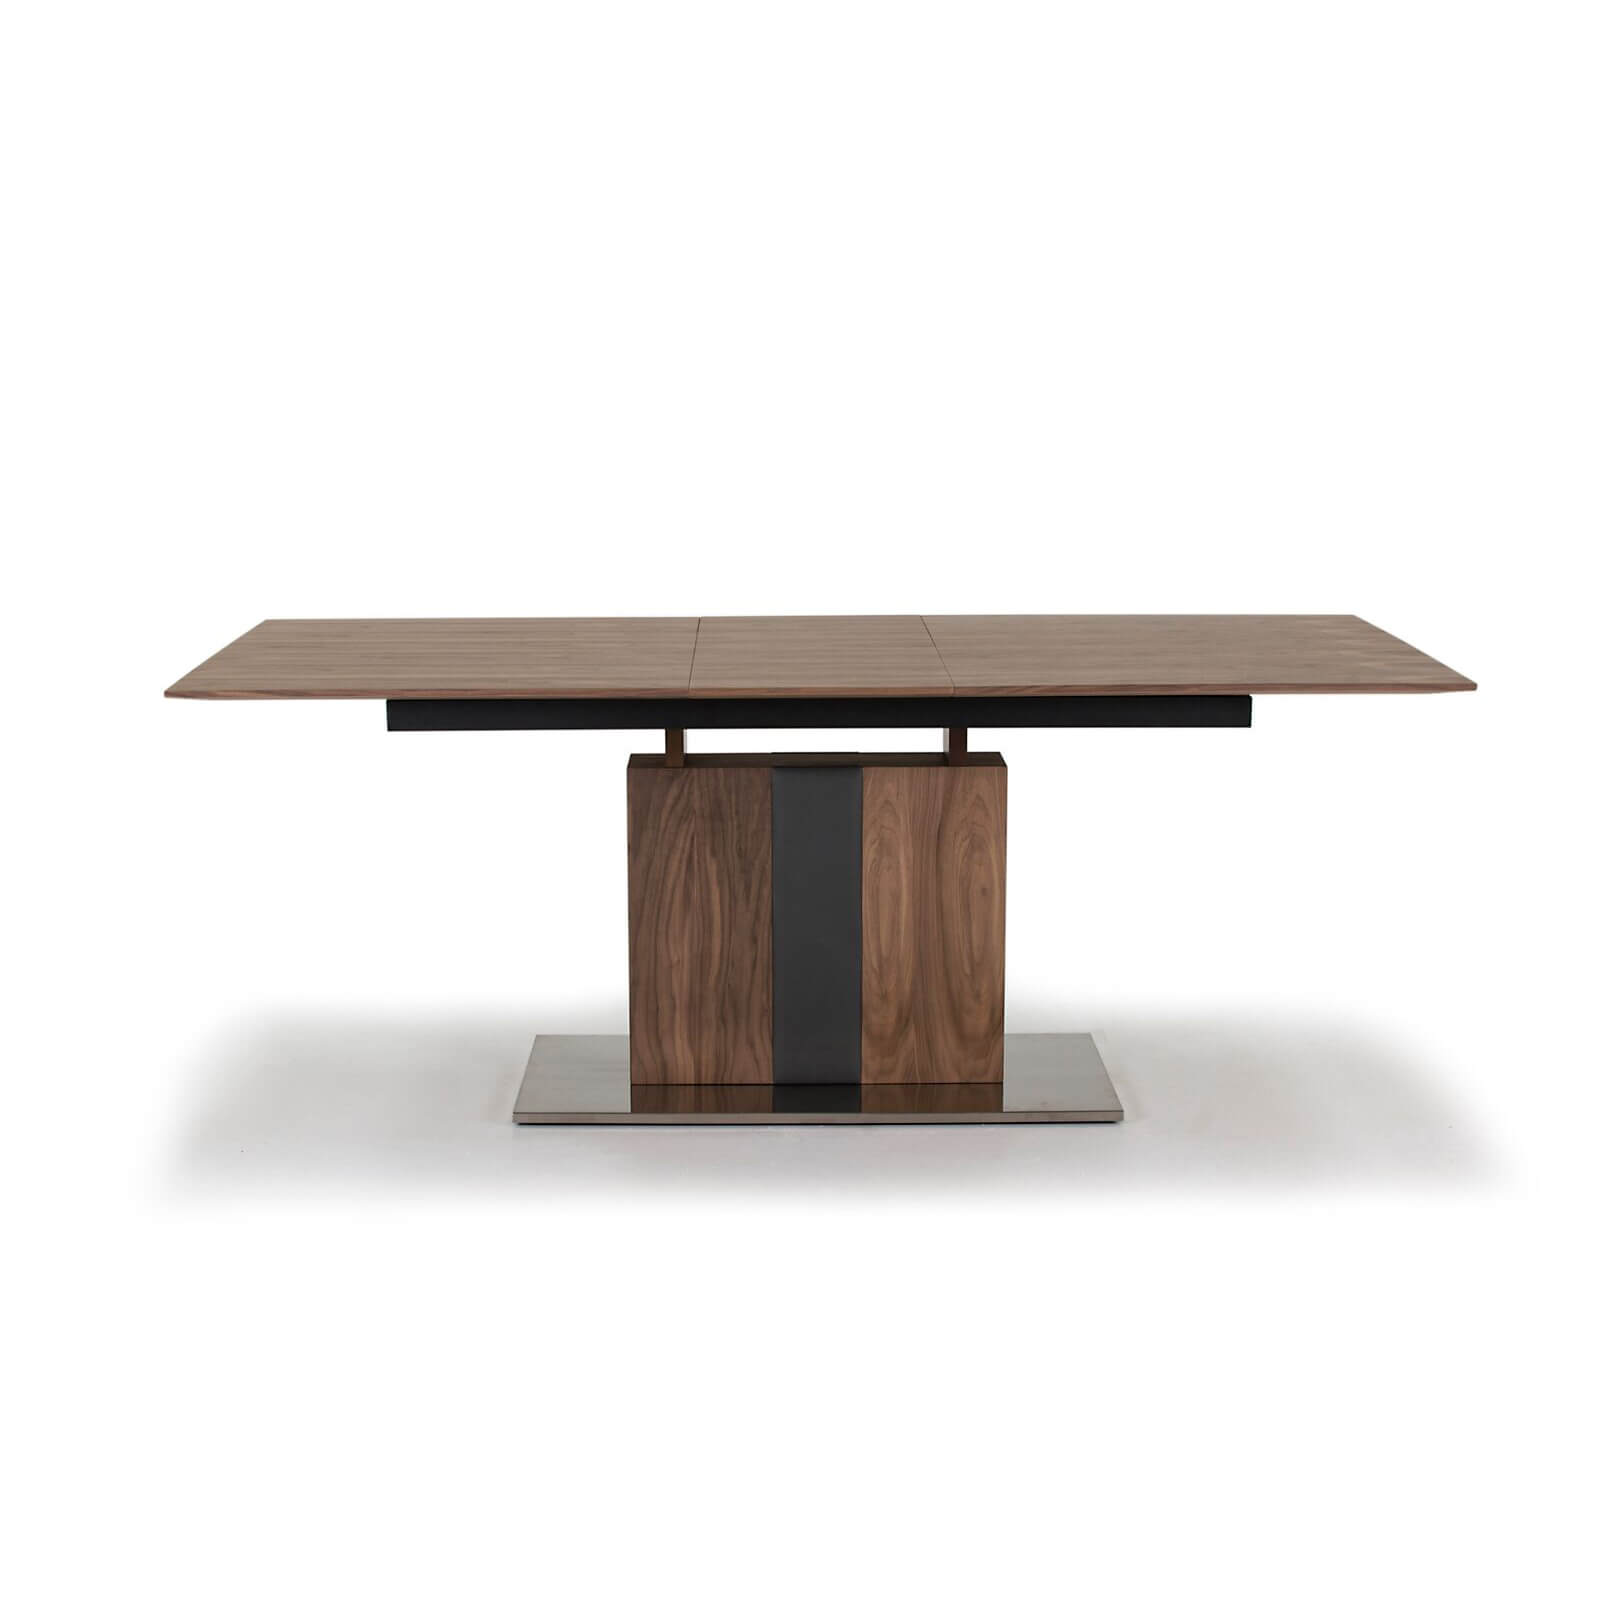 Almara Walnut and Steel Extending Dining Table 6 - 8 Seater